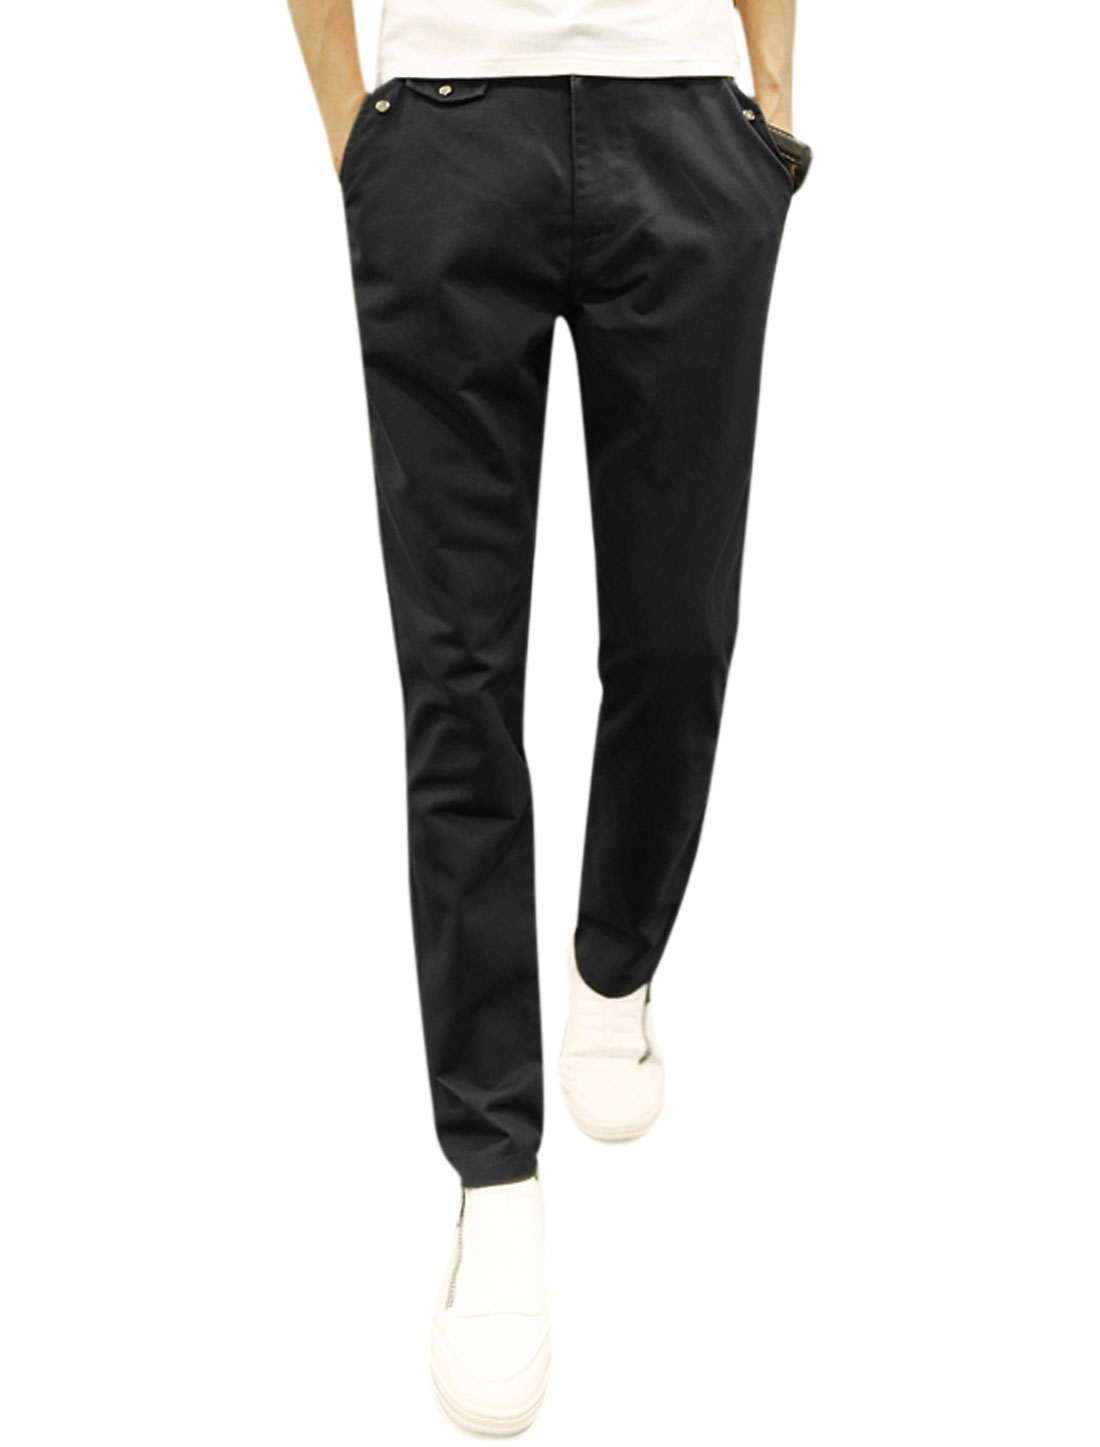 Men Mid Rise Two Slant Pockets Tapered Zip Fly Buttoned Trousers Black W30